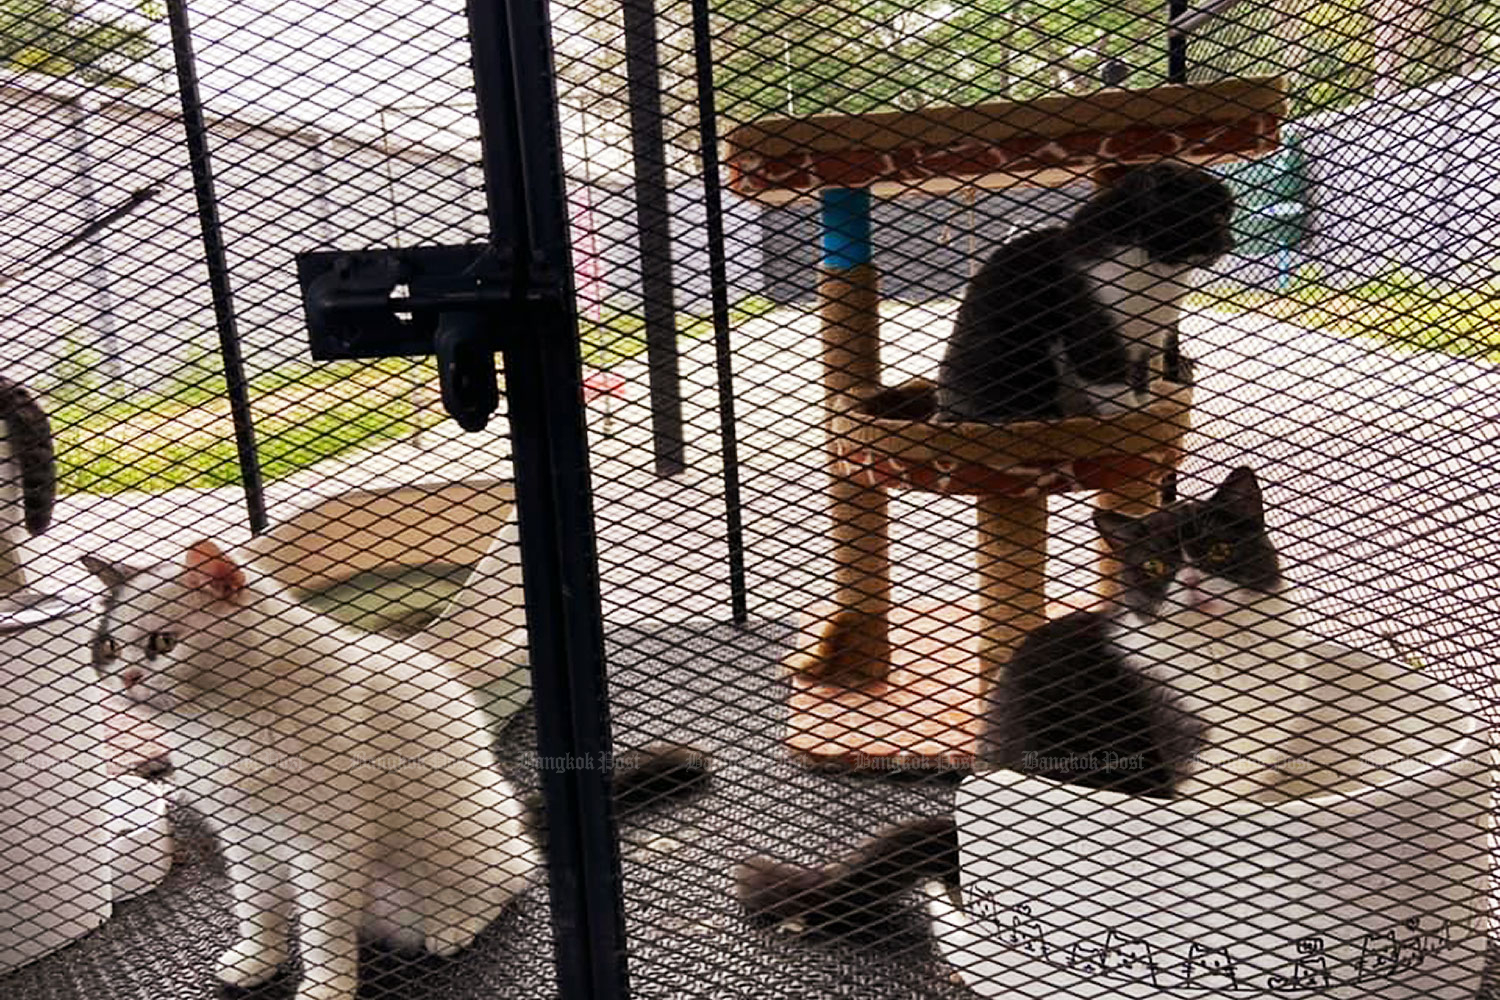 Cats are found at the house of a suspect belonging to a drug network controlled by an individual known as